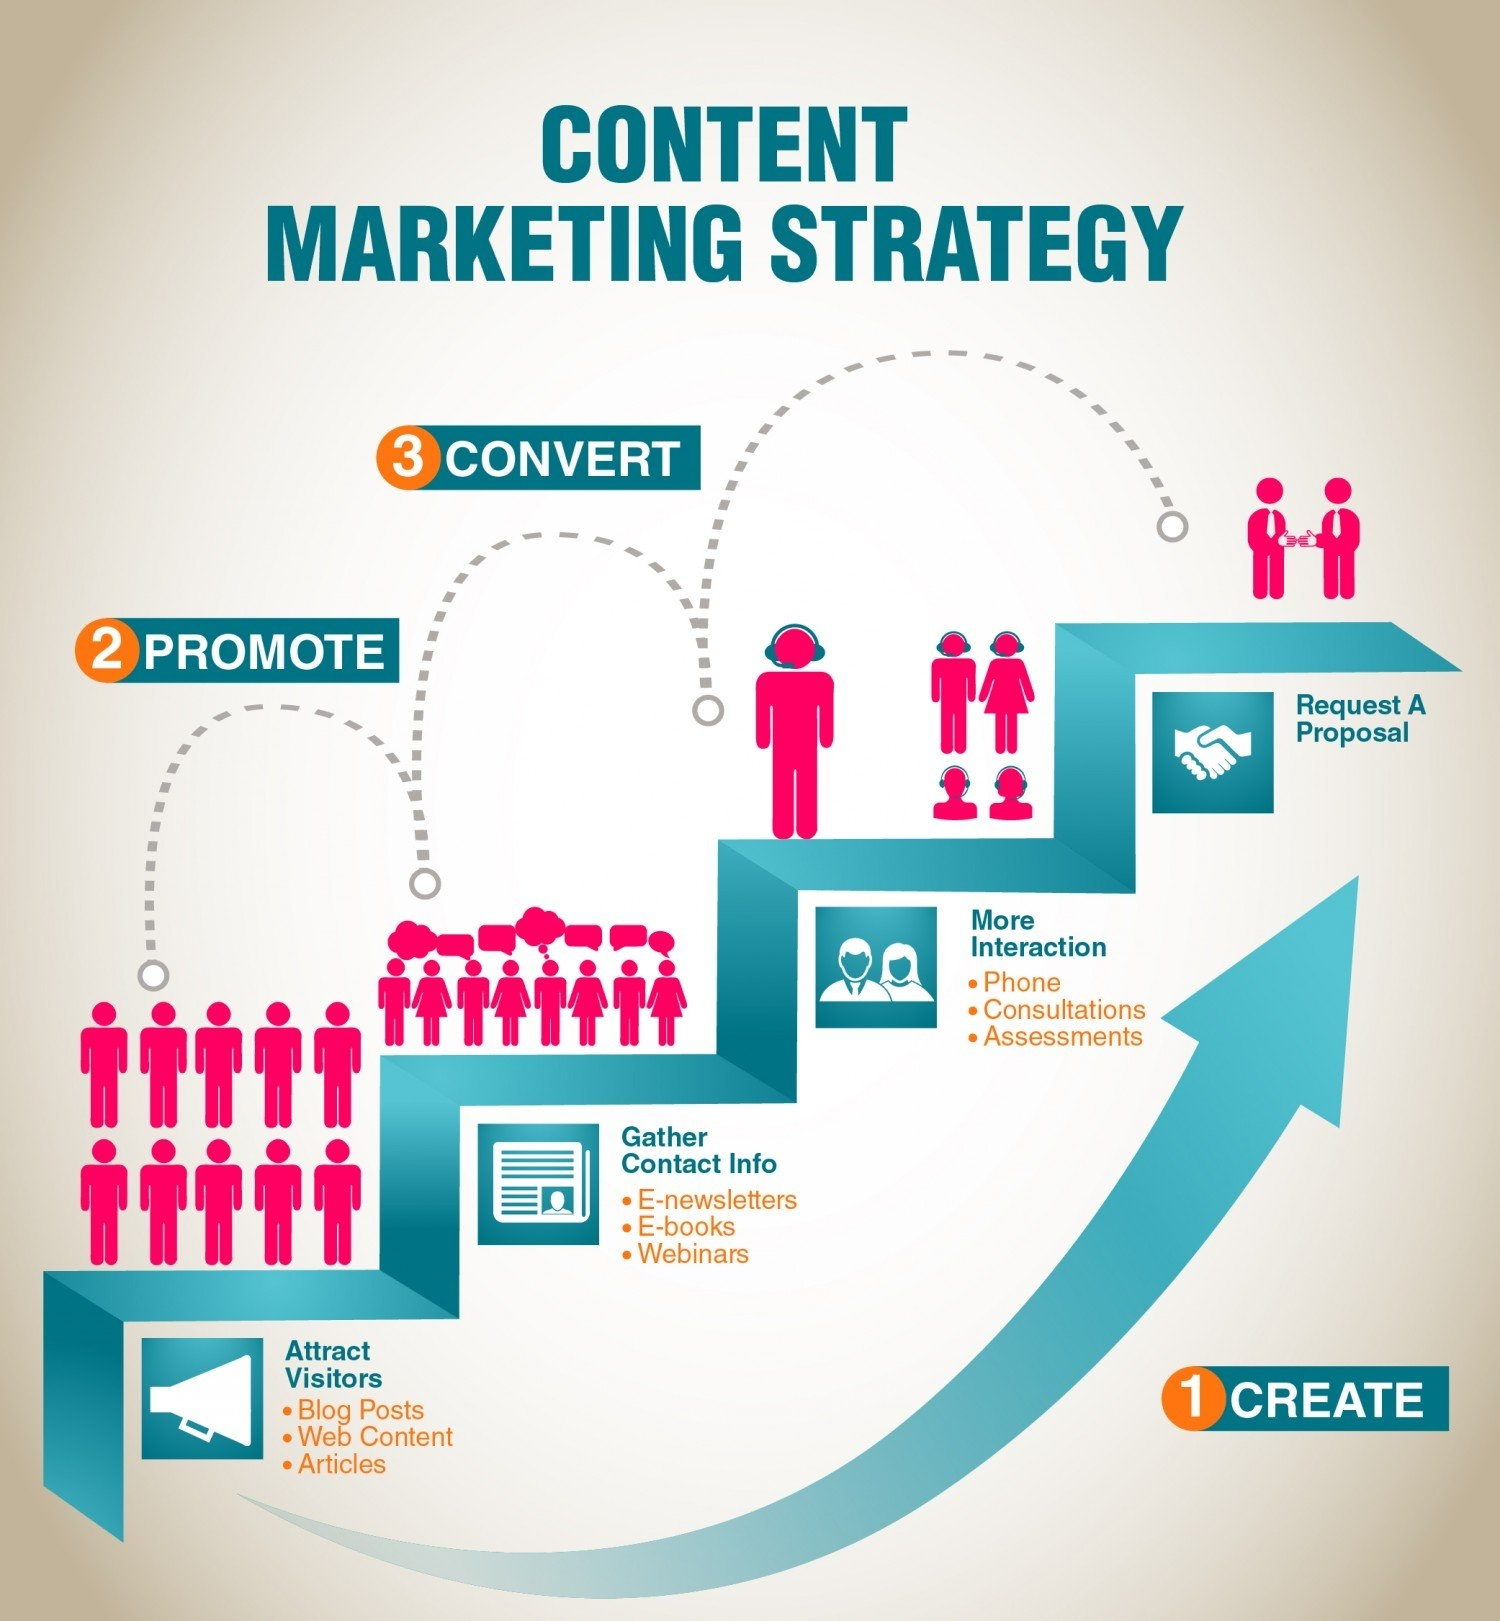 Content Marketing Strategy for Small Business Brand | Local